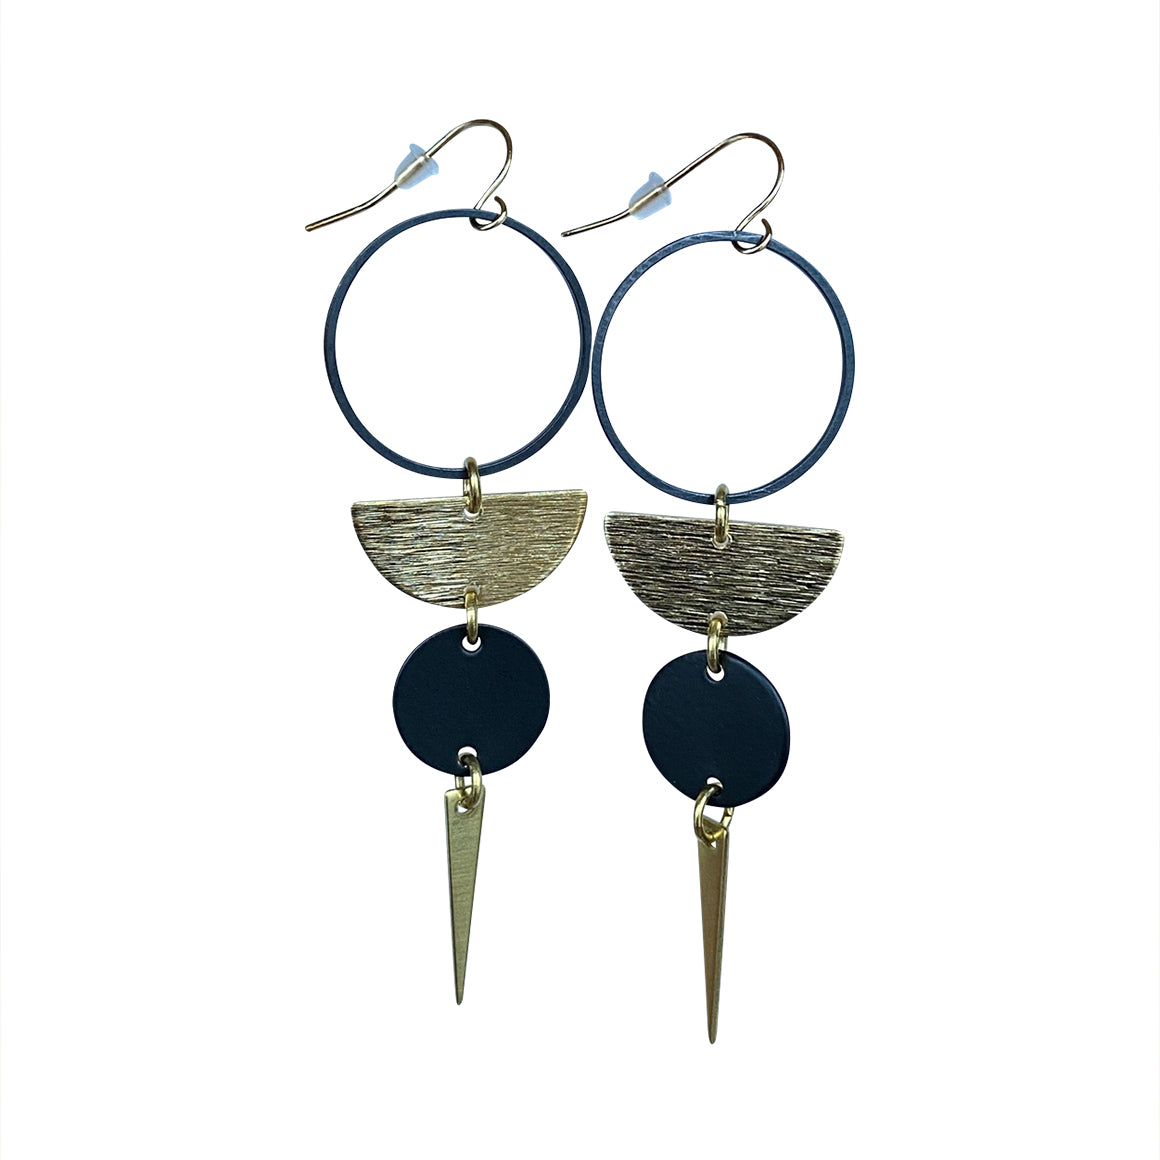 Kaiko Black Circle Half Moon Earrings